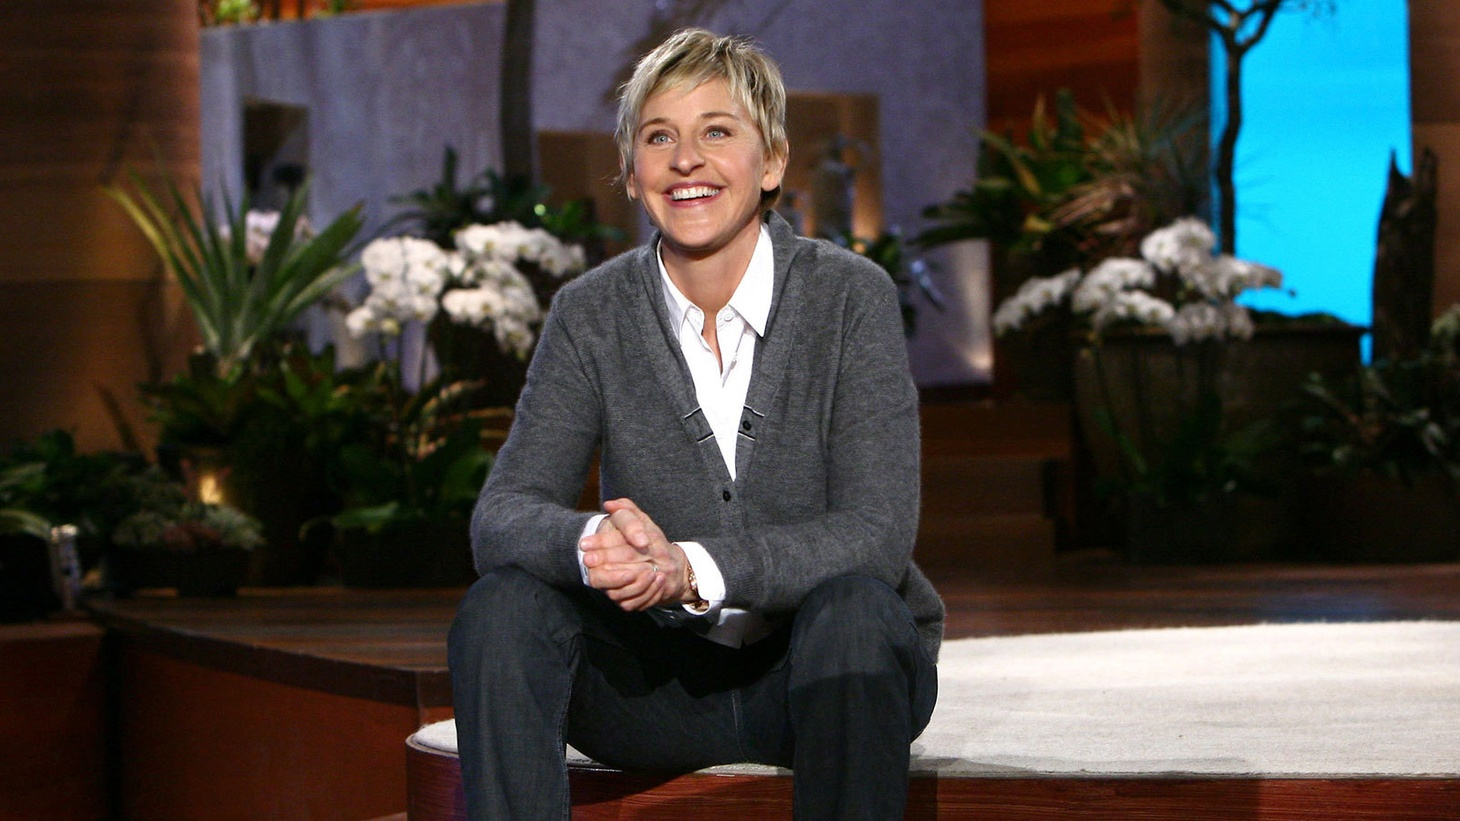 Warm and empathic tone of the Ellen Show...